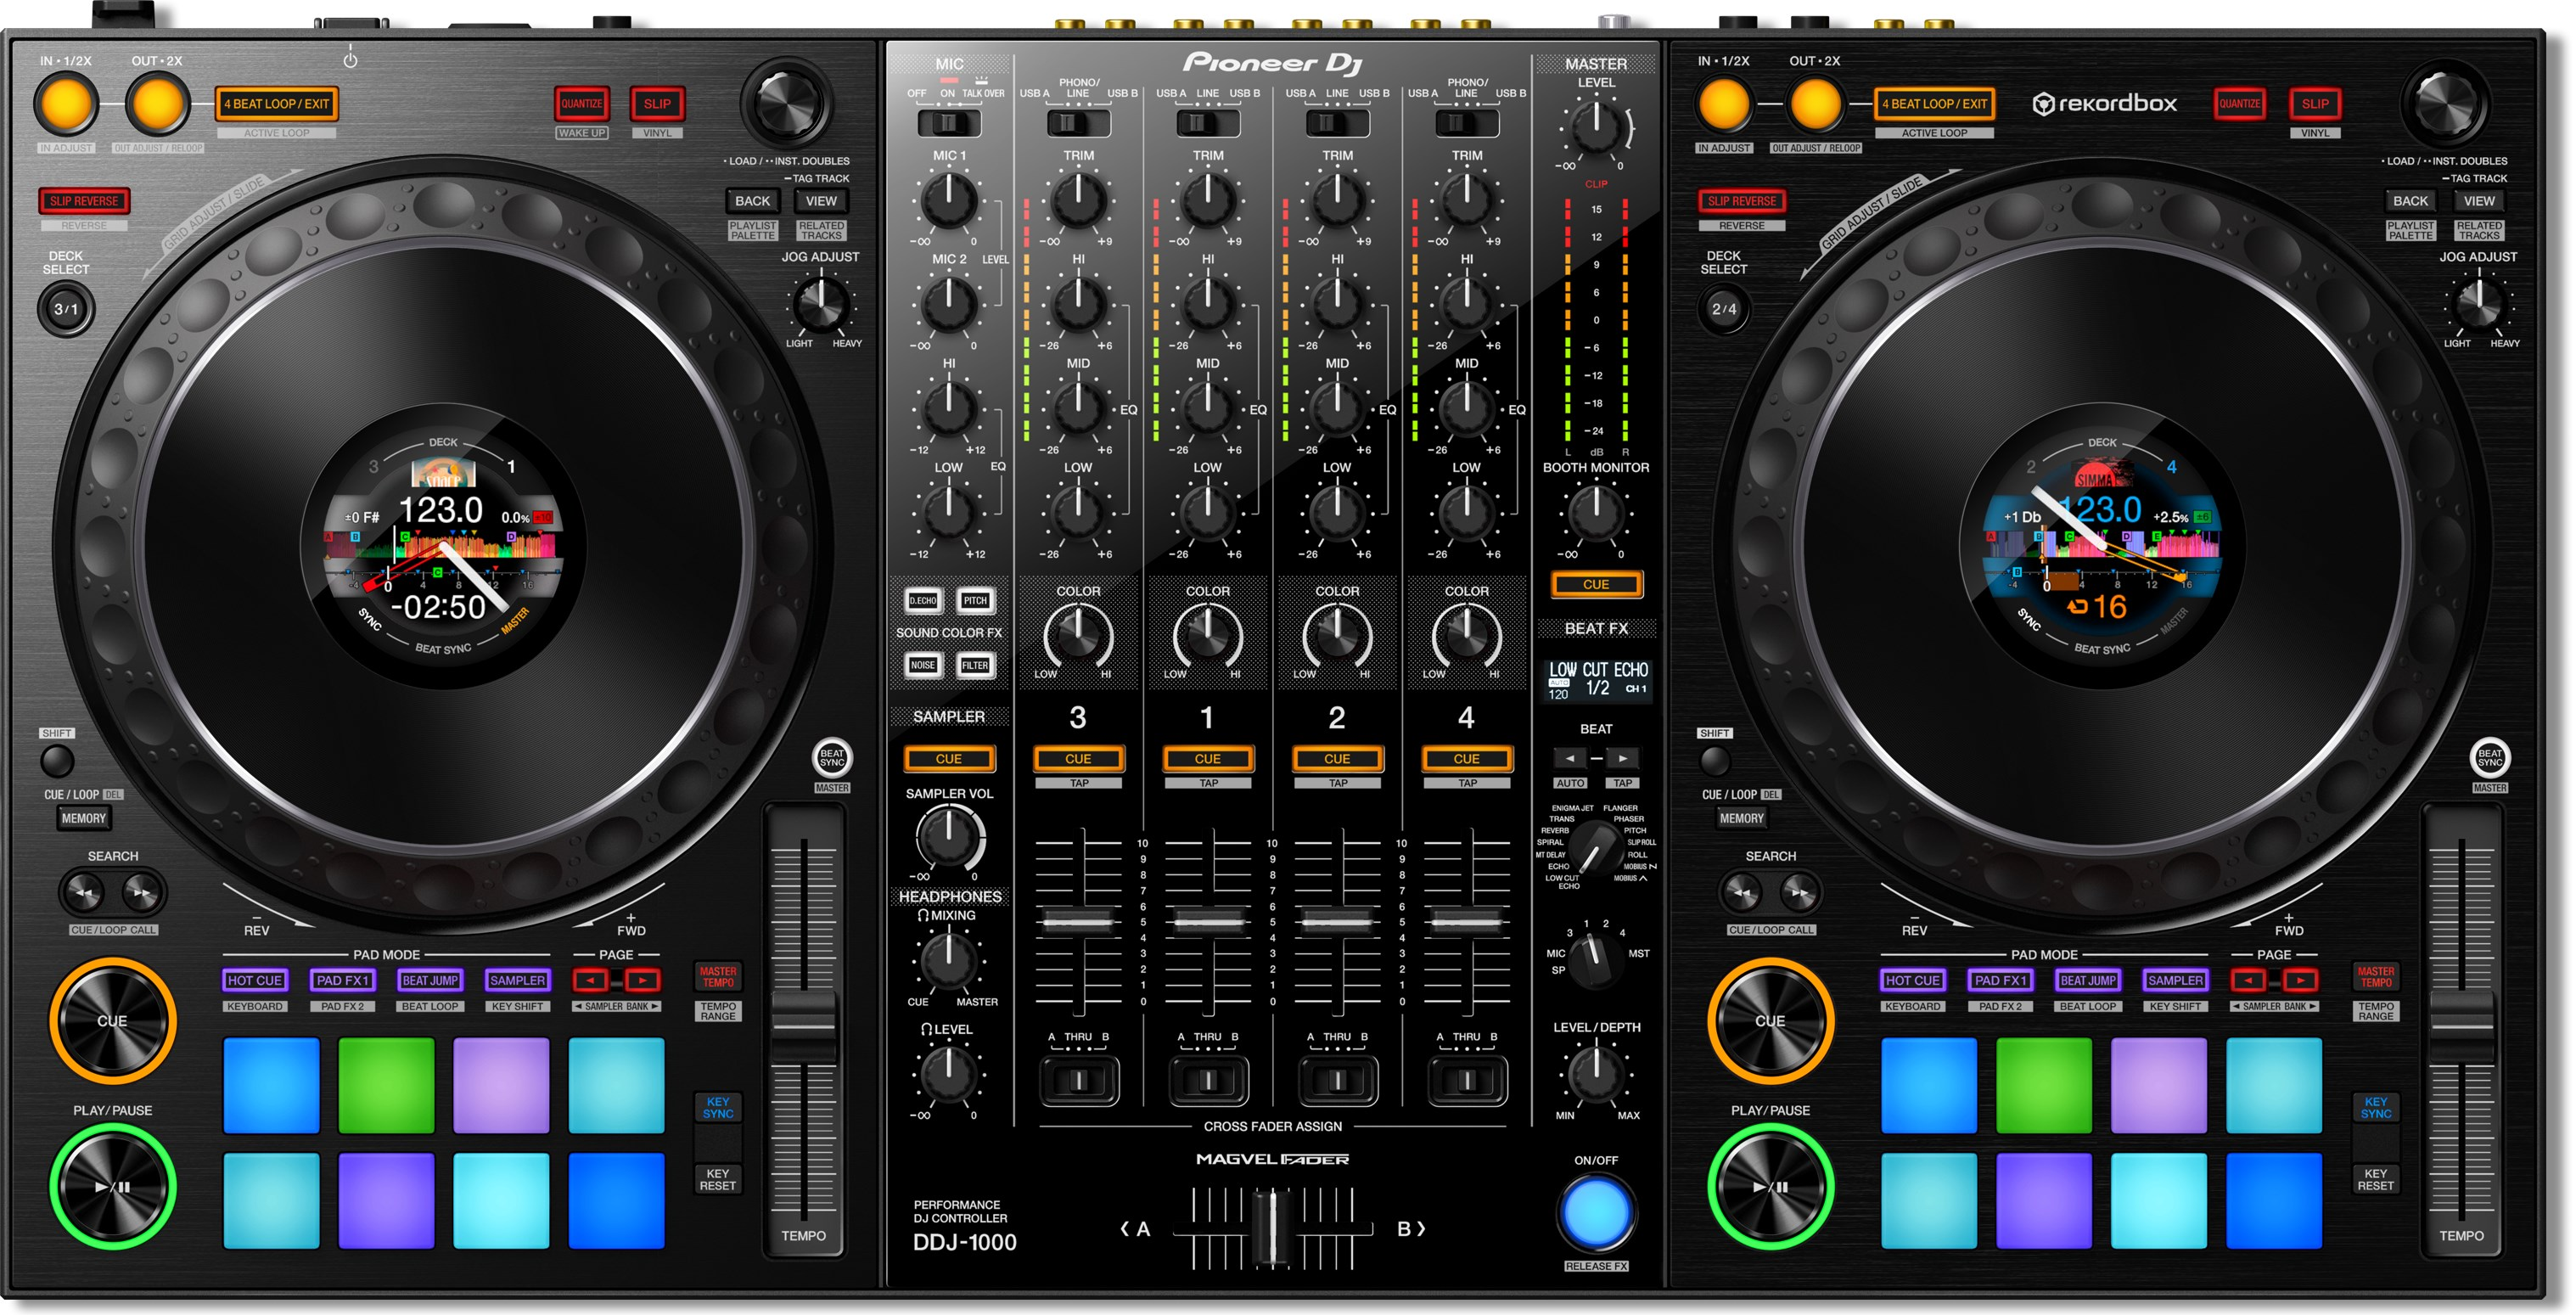 Nuovo controller Pioneer DDJ-1000